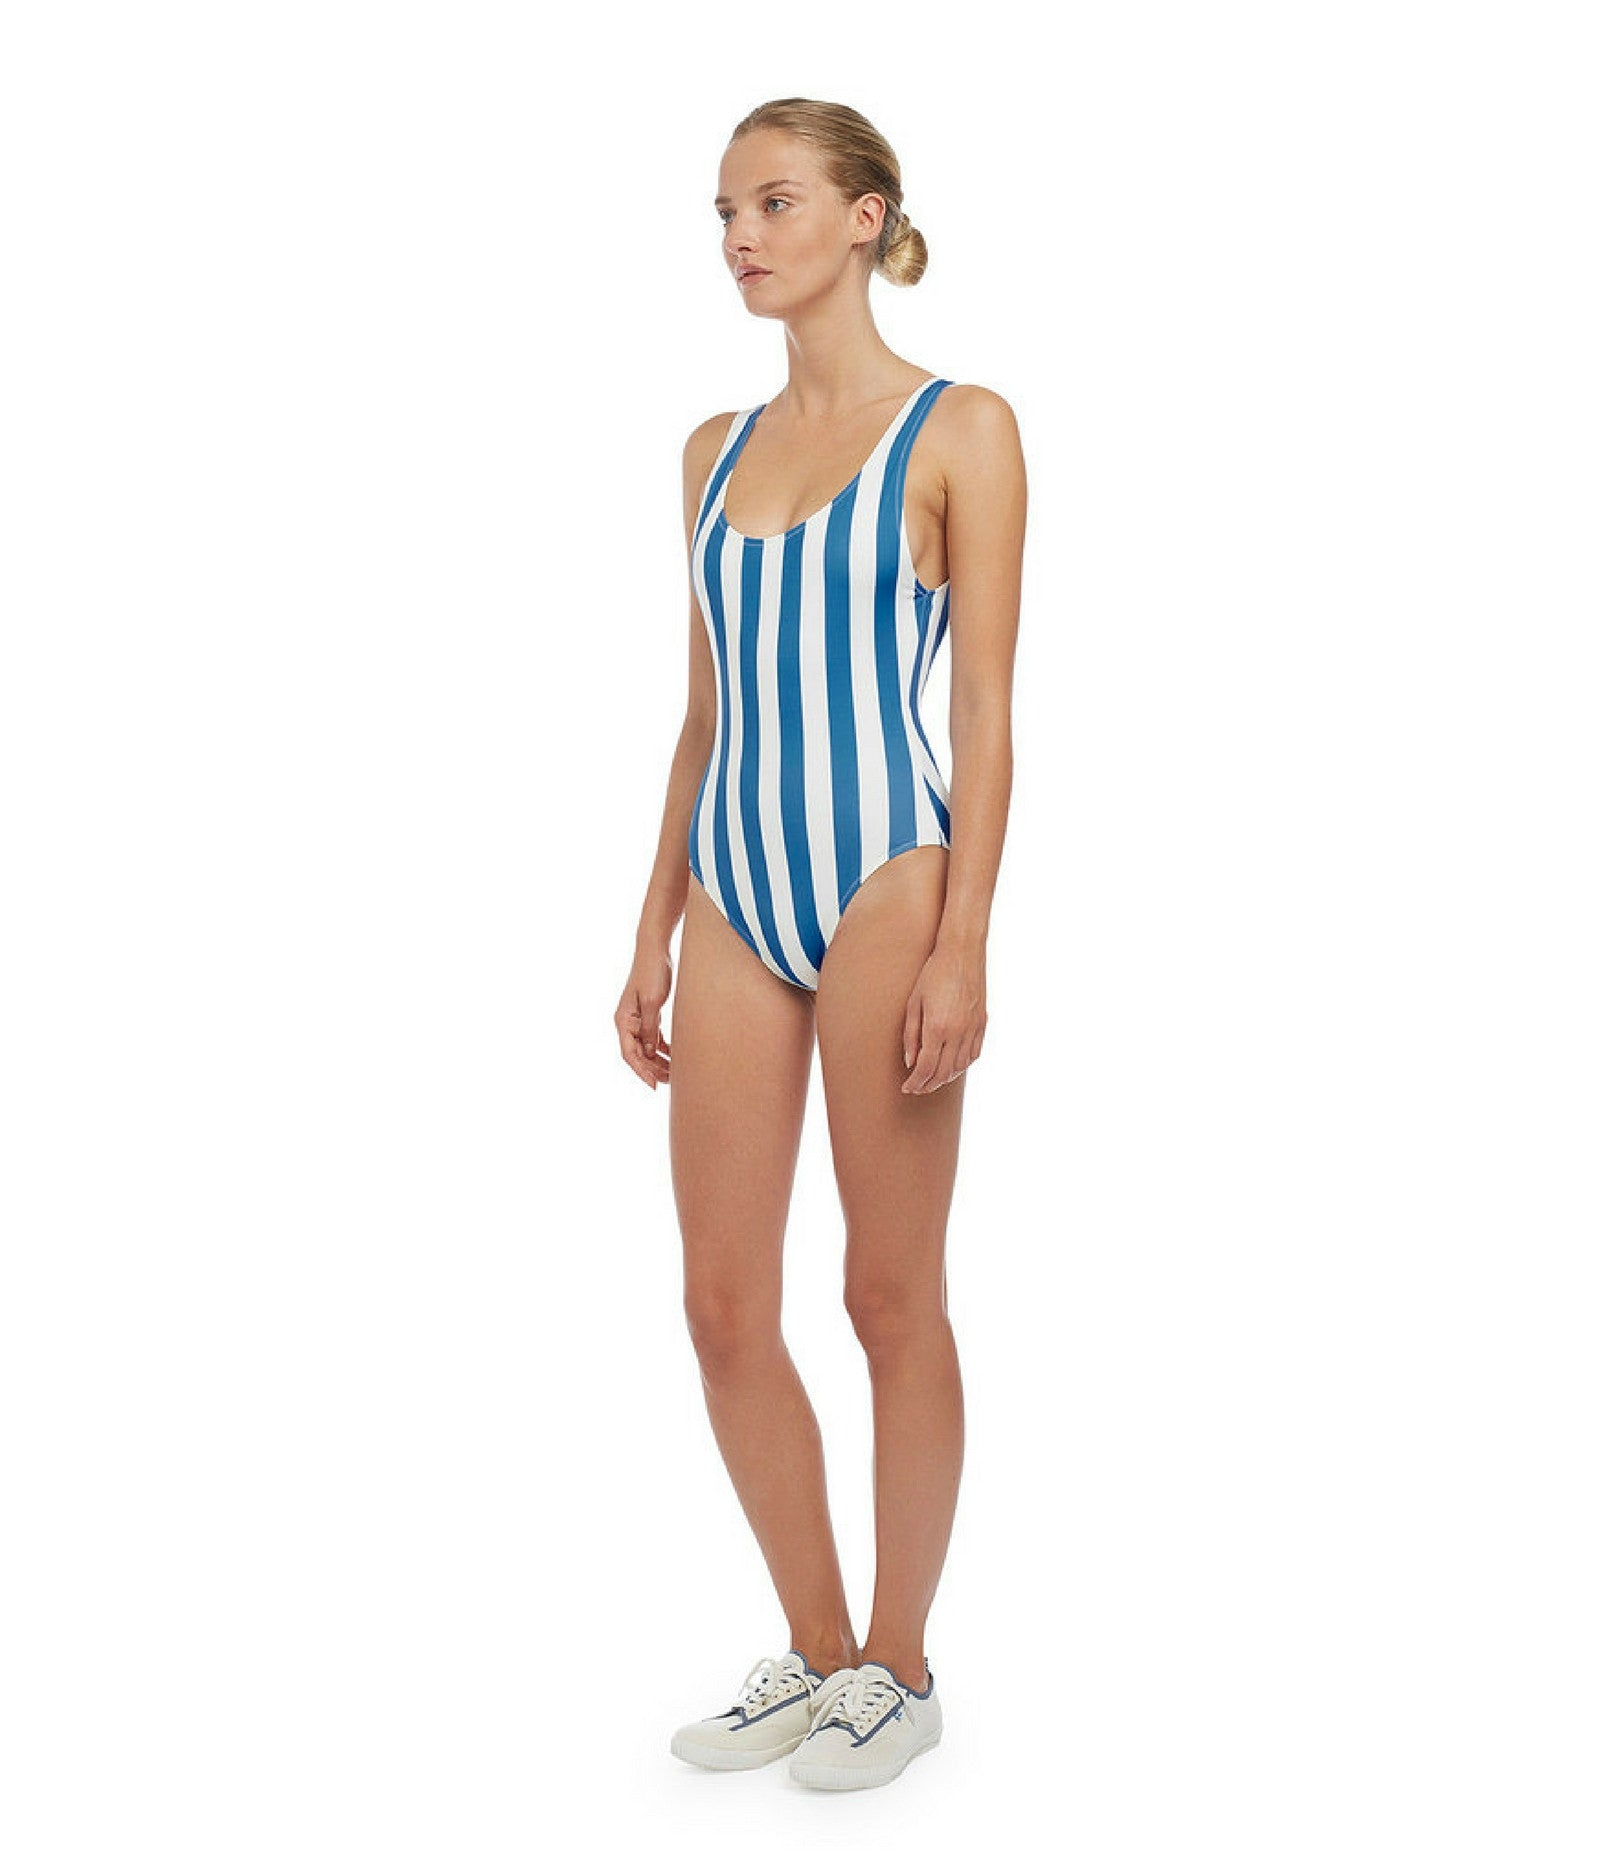 One-Piece Blue Cream Stripe Swimsuit The Anne-Marie